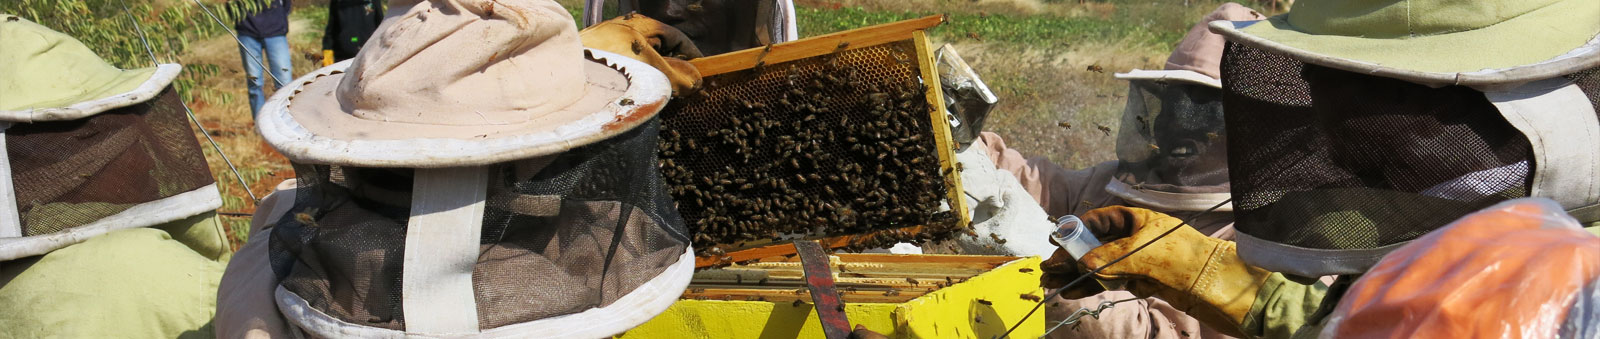 Harvesting langstroth hives